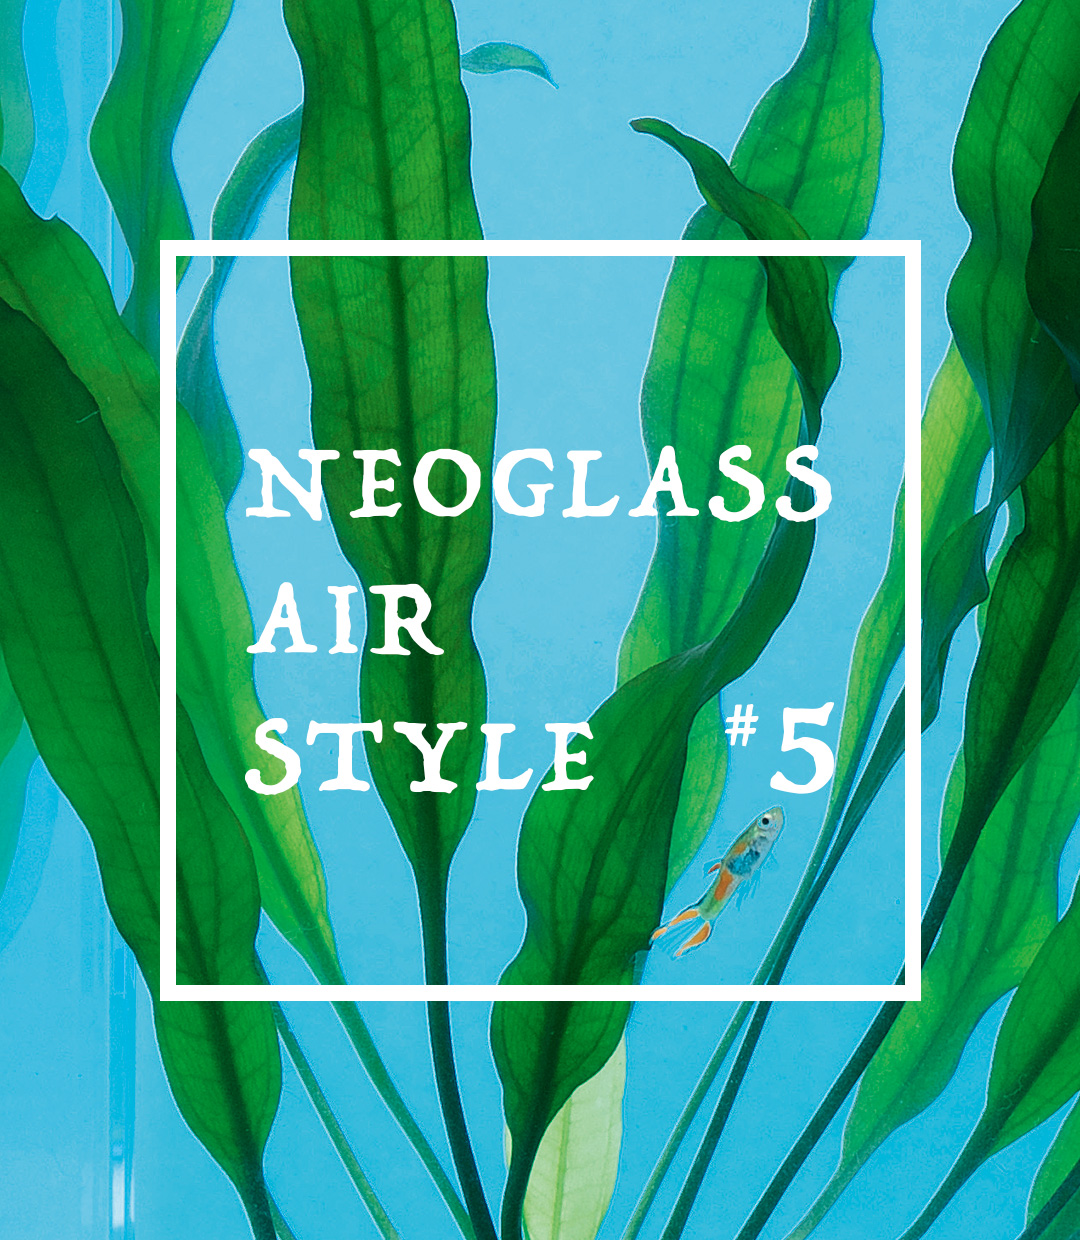 NEO GLASS AIR STYLE #5